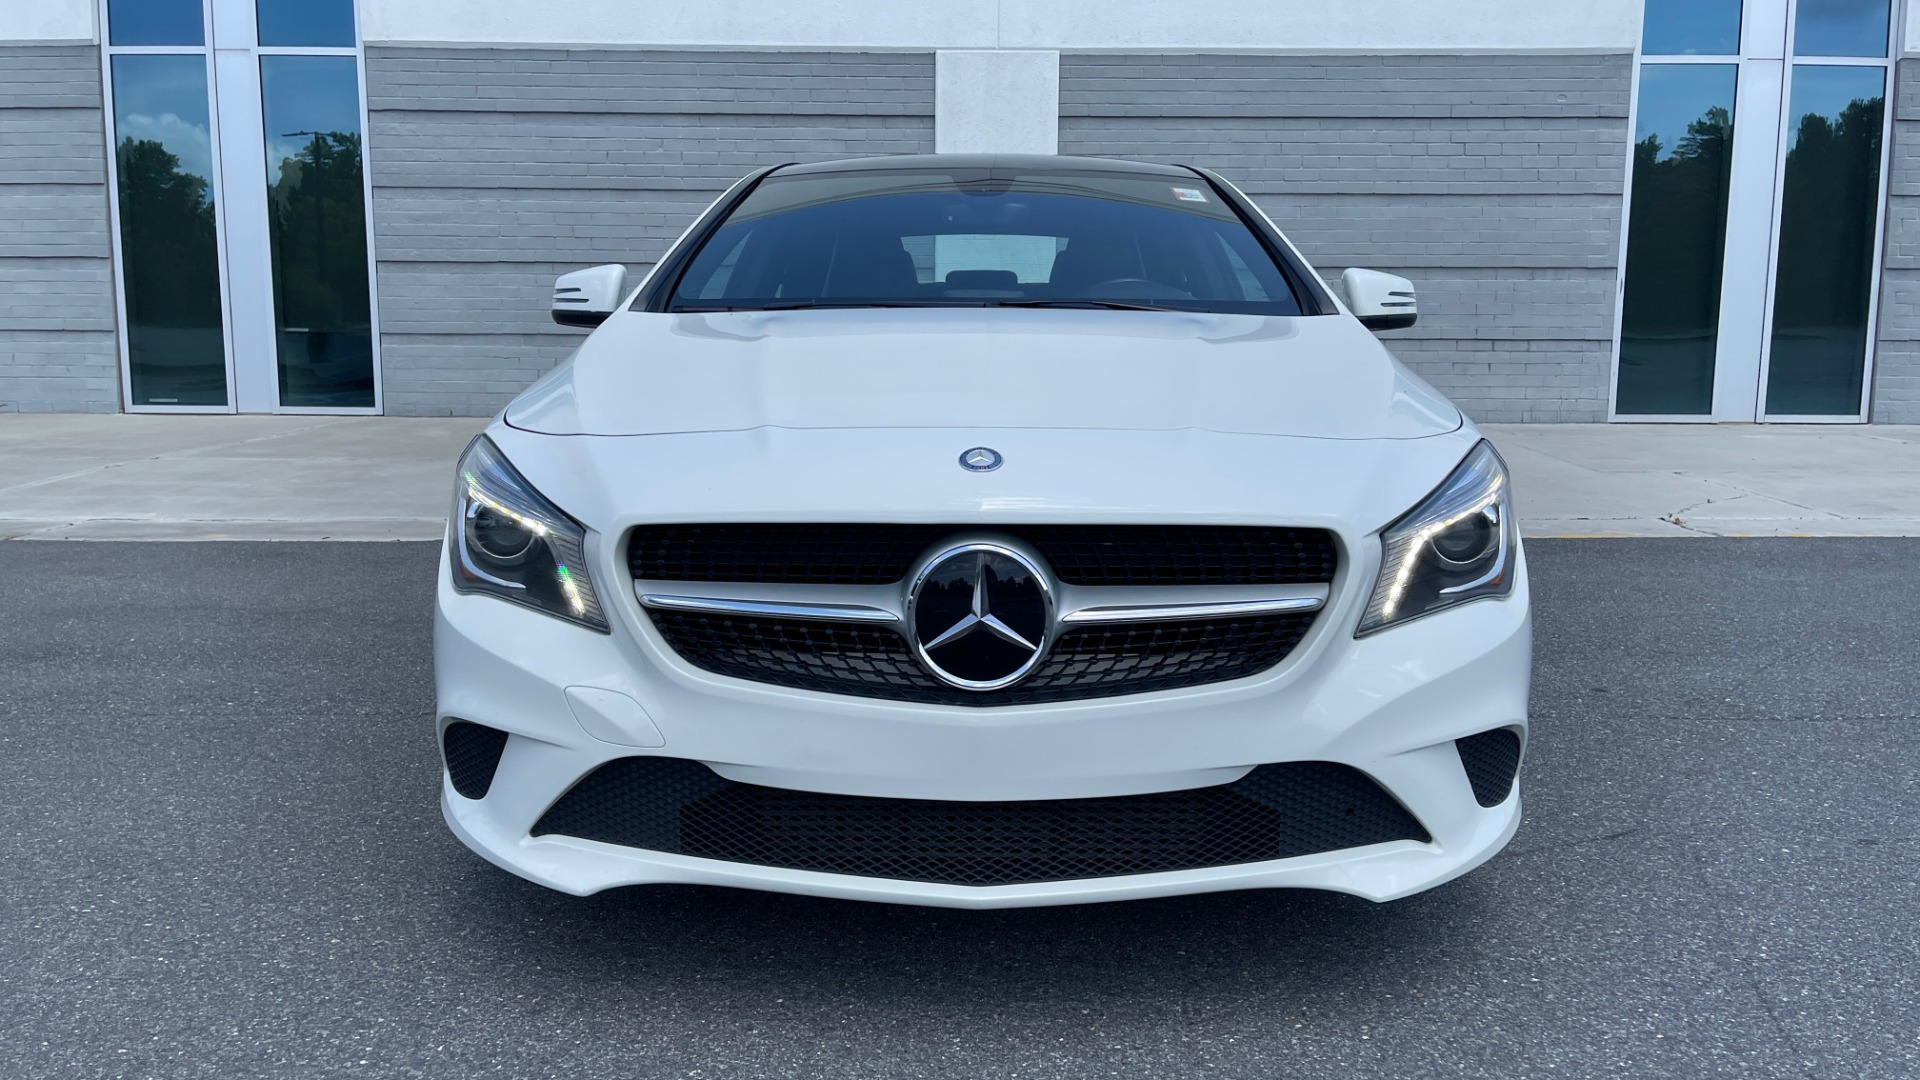 Used 2014 Mercedes-Benz CLA-Class 250 PREMIUM / NAV / MULTIMEDIA PKG / PANO-ROOF / REARVIEW for sale $19,495 at Formula Imports in Charlotte NC 28227 11